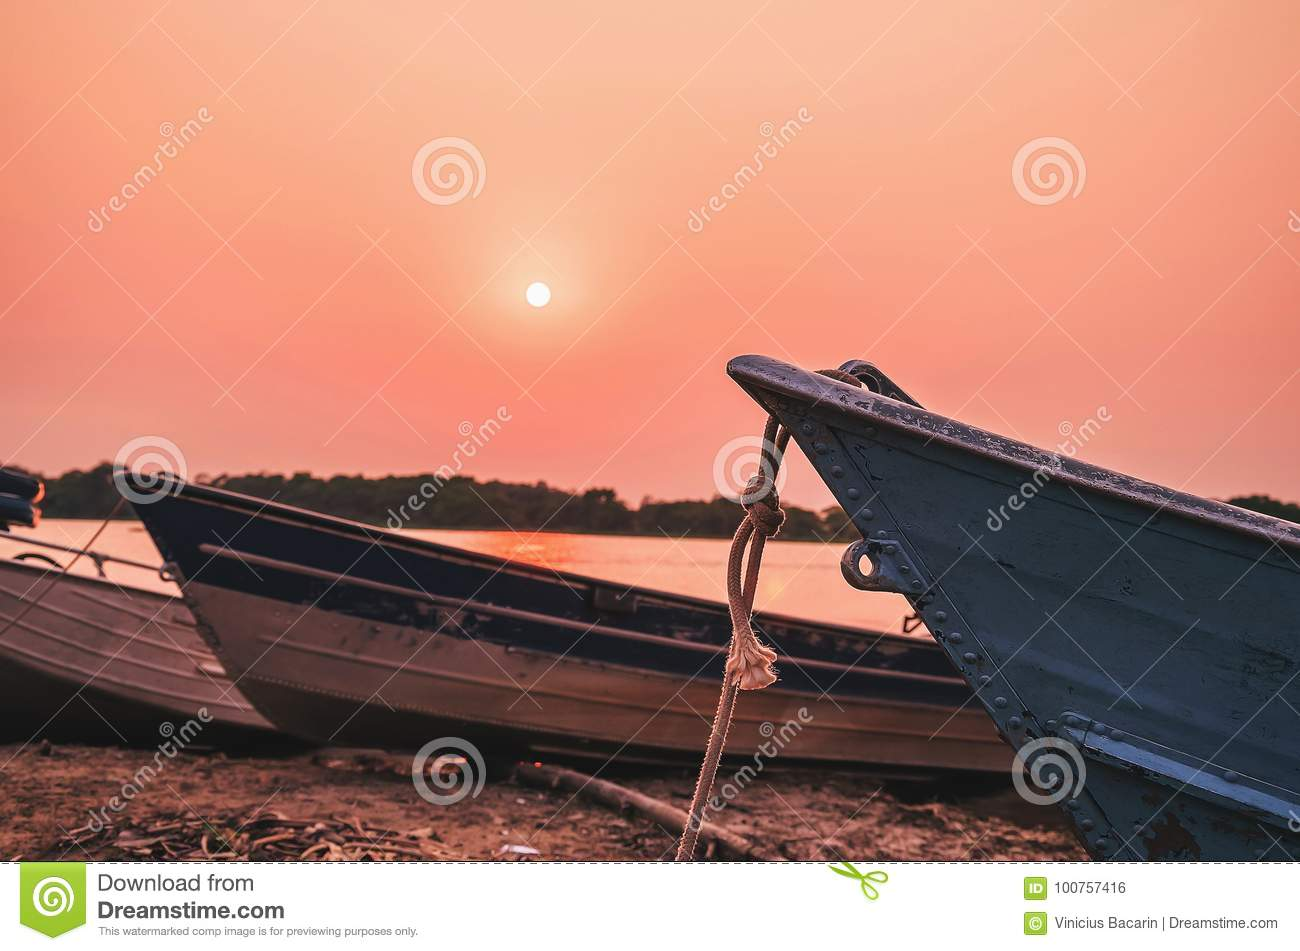 Wonderful landscape of old boats anchored in Pantanal, Brazil